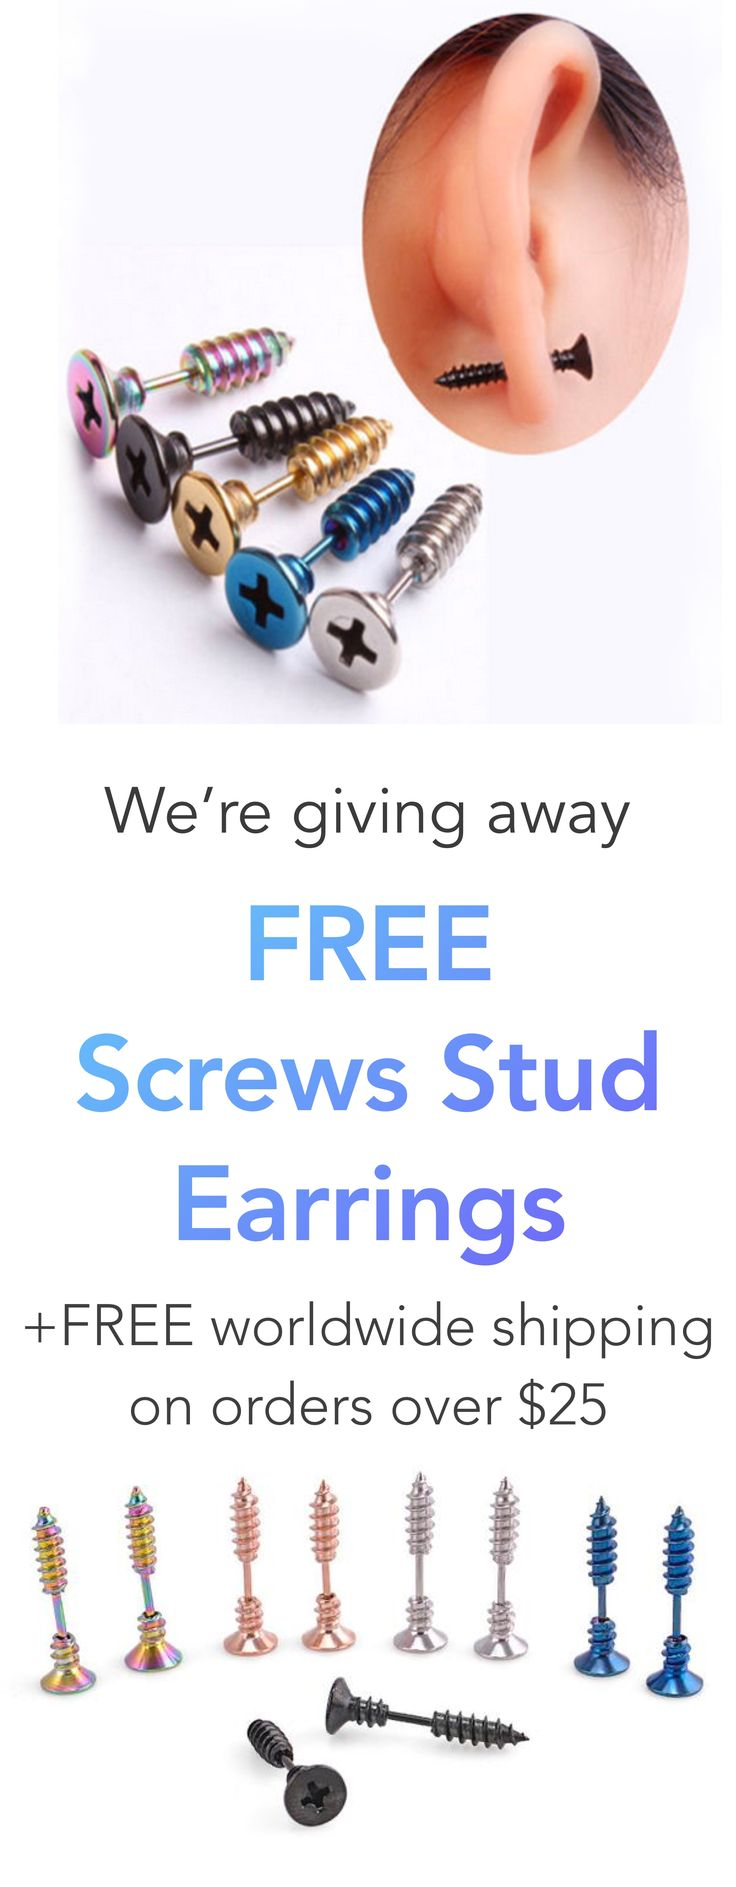 FREE Screws Stud Earrings